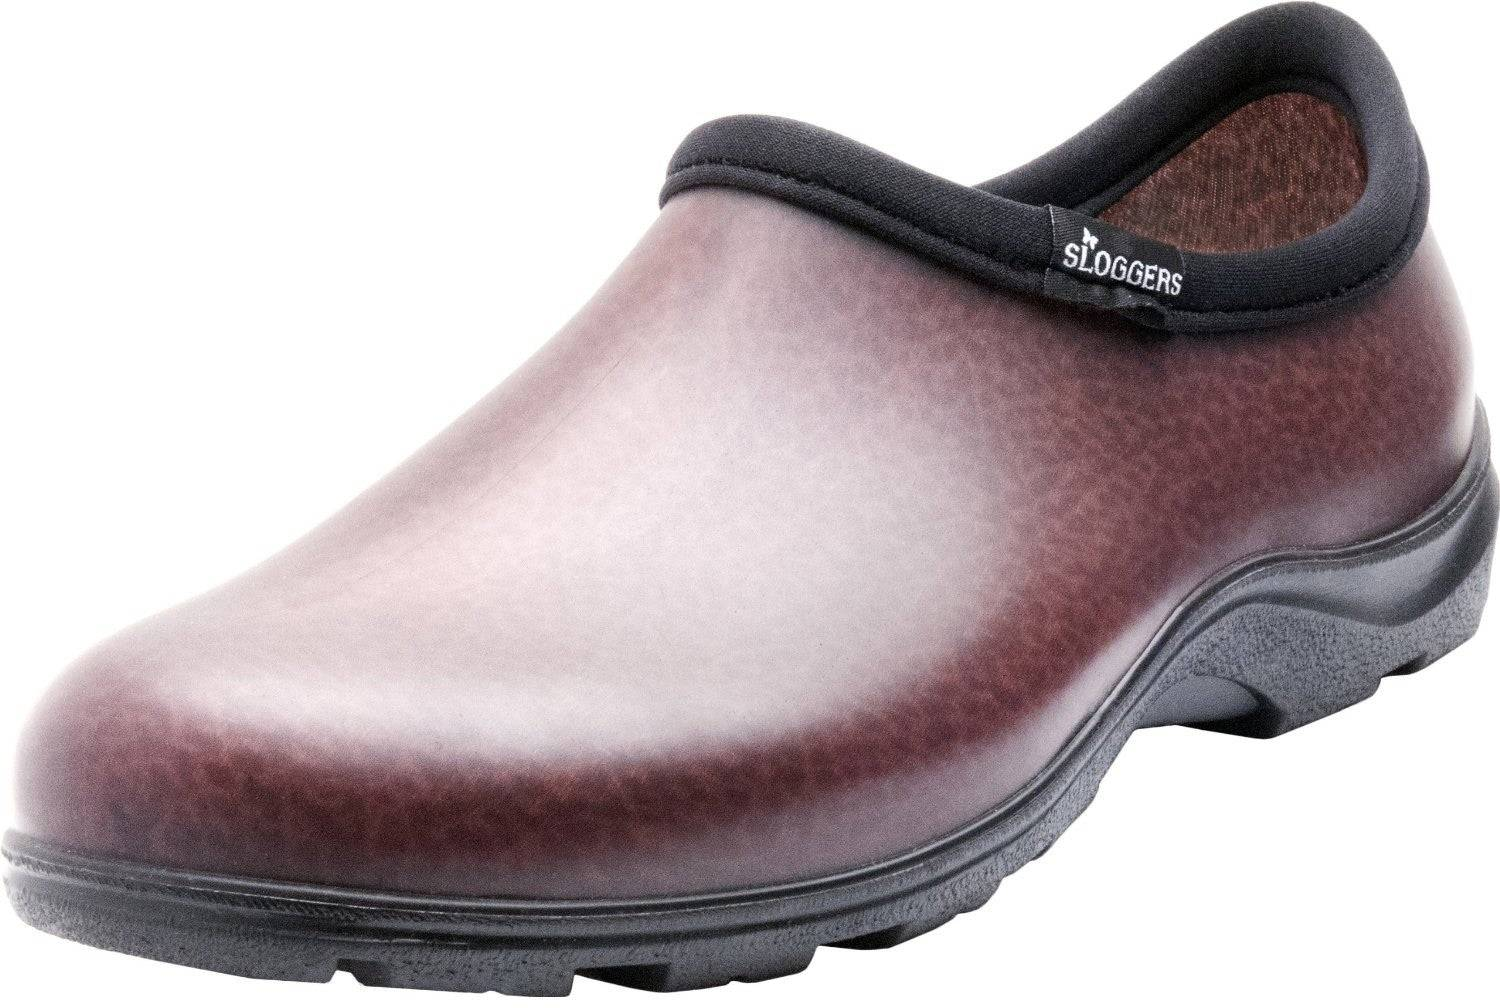 Sloggers 5301bn12 Men's Rain And Garden Shoes, Size 12, Leather Brown